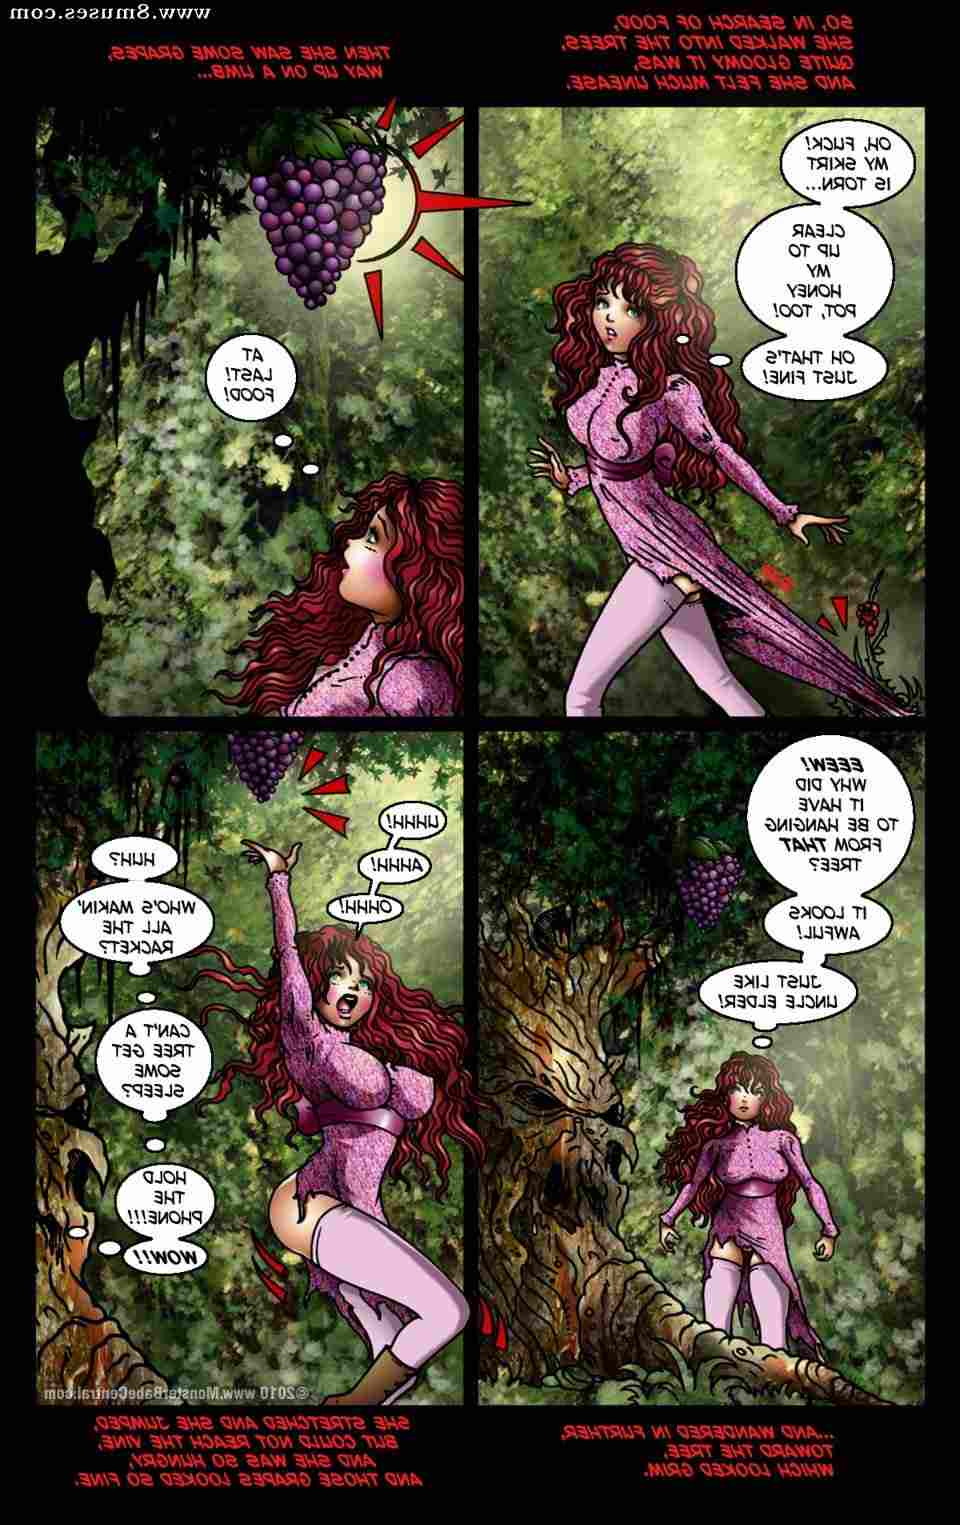 Central-Comics/Horror-Babe-Central/Fable-of-Fright Fable_of_Fright__8muses_-_Sex_and_Porn_Comics_163.jpg